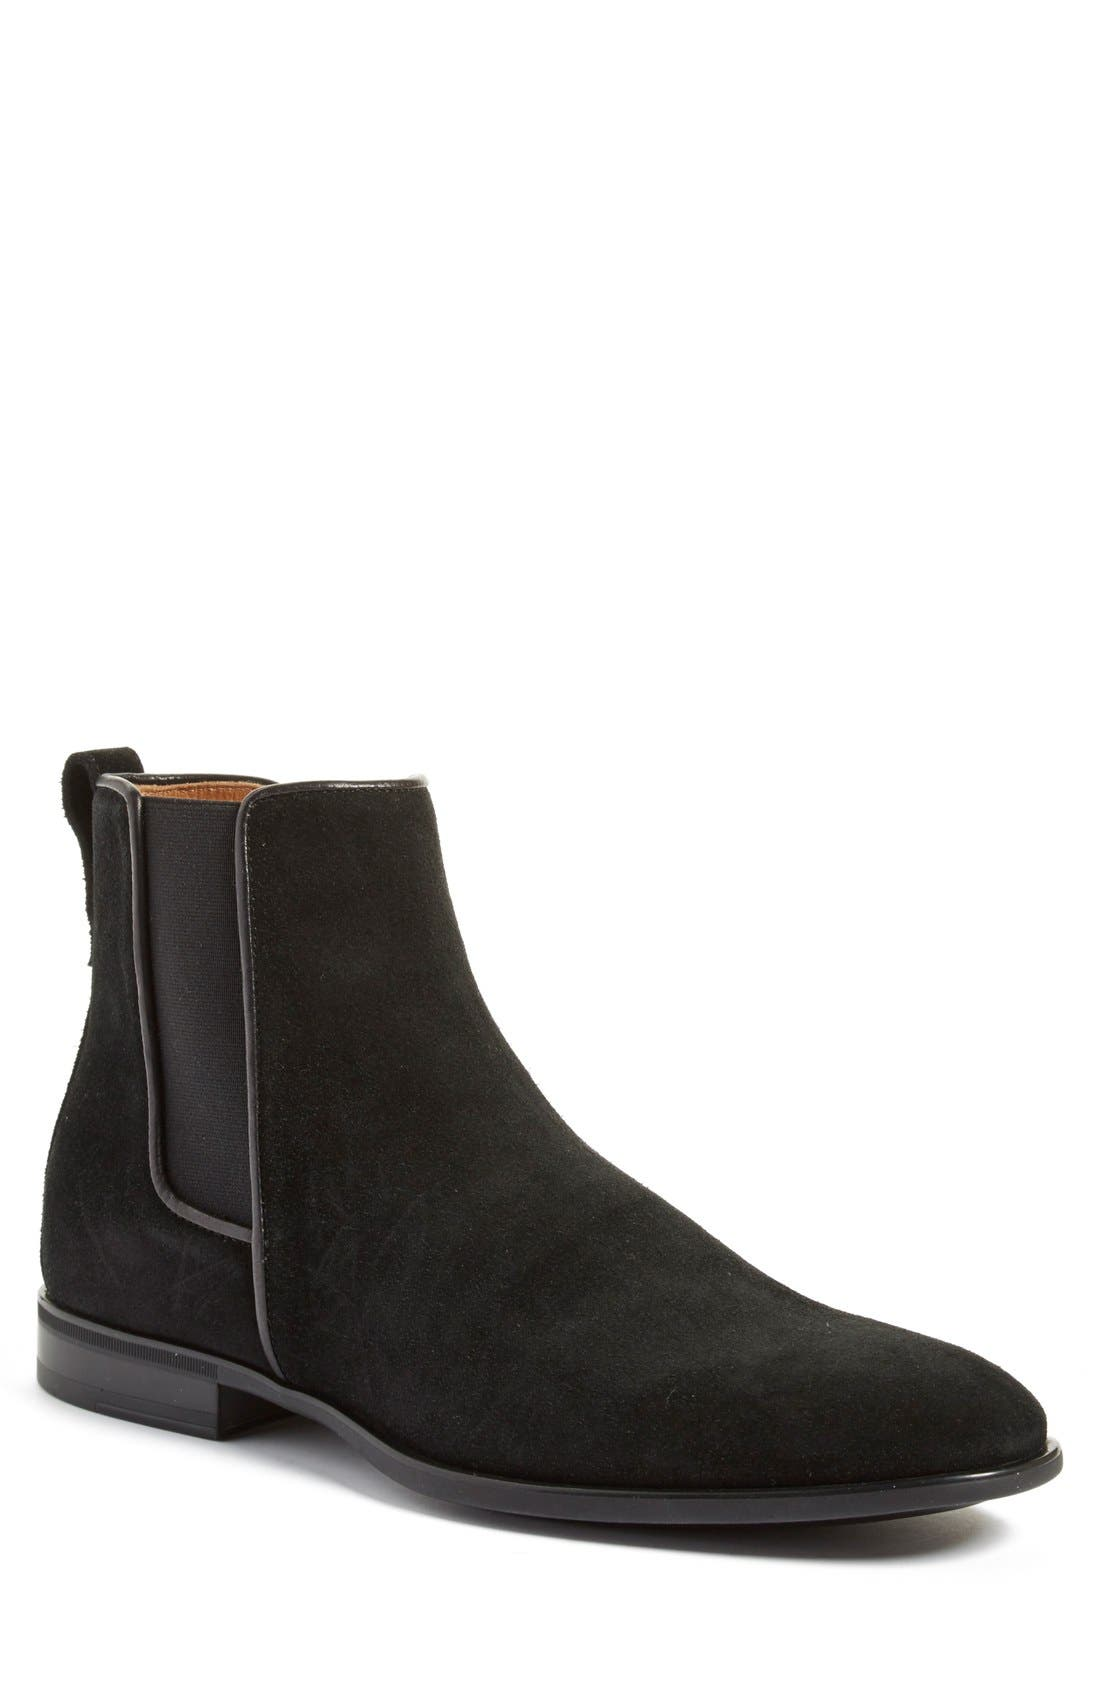 'Adrian' Weatherproof Chelsea Boot,                         Main,                         color, Black Suede